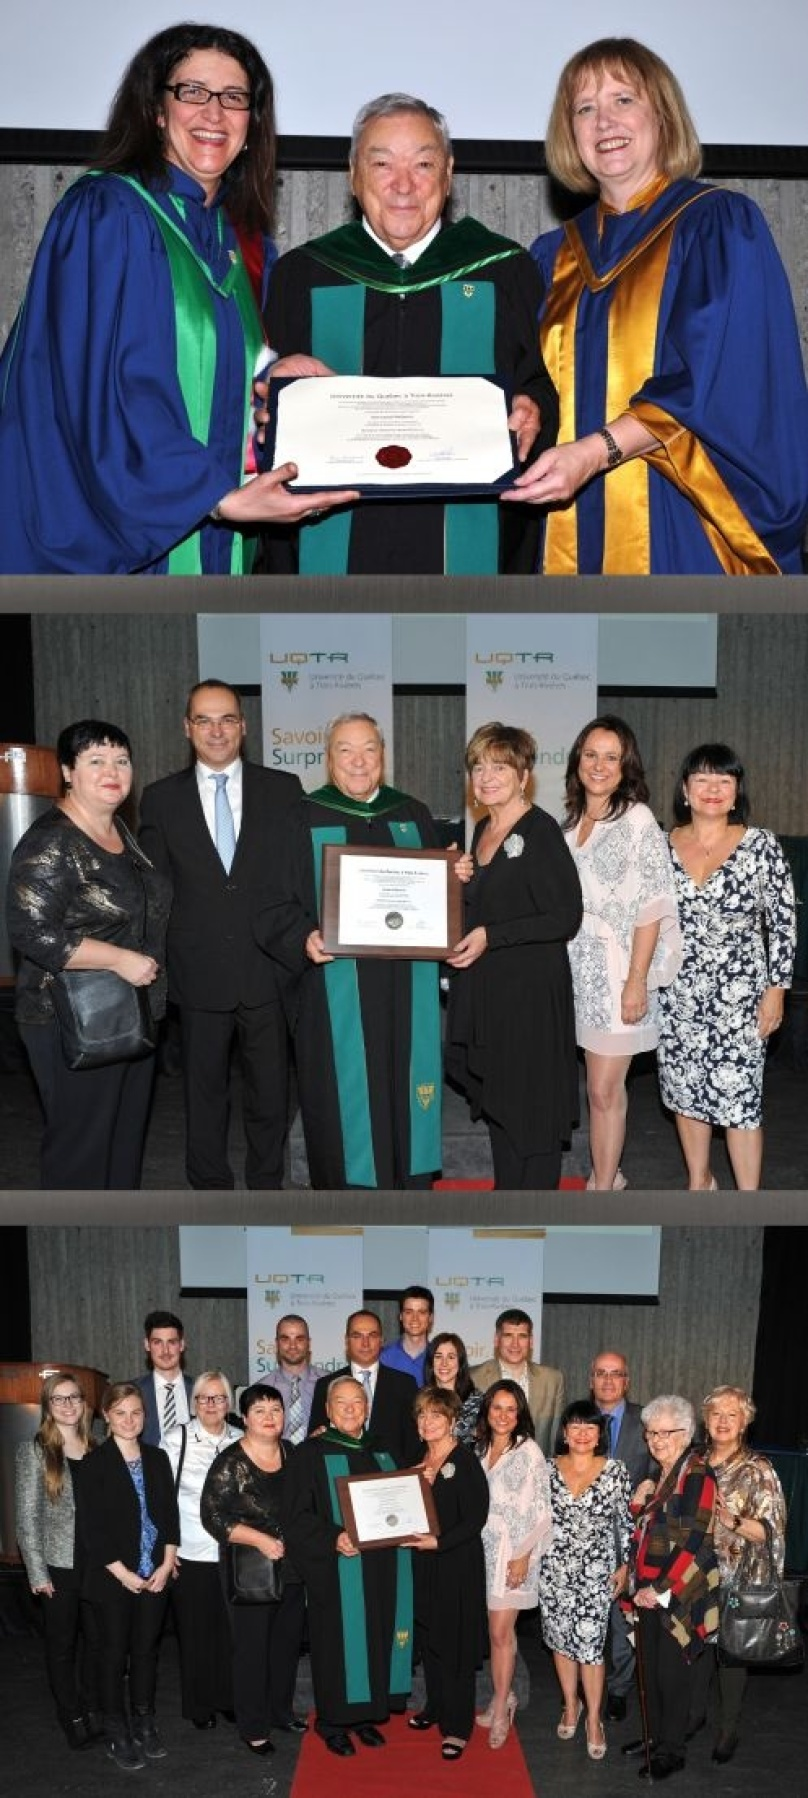 The founder of Marmen receives an honorary doctorate from the University of Trois-Rivières (UQTR)